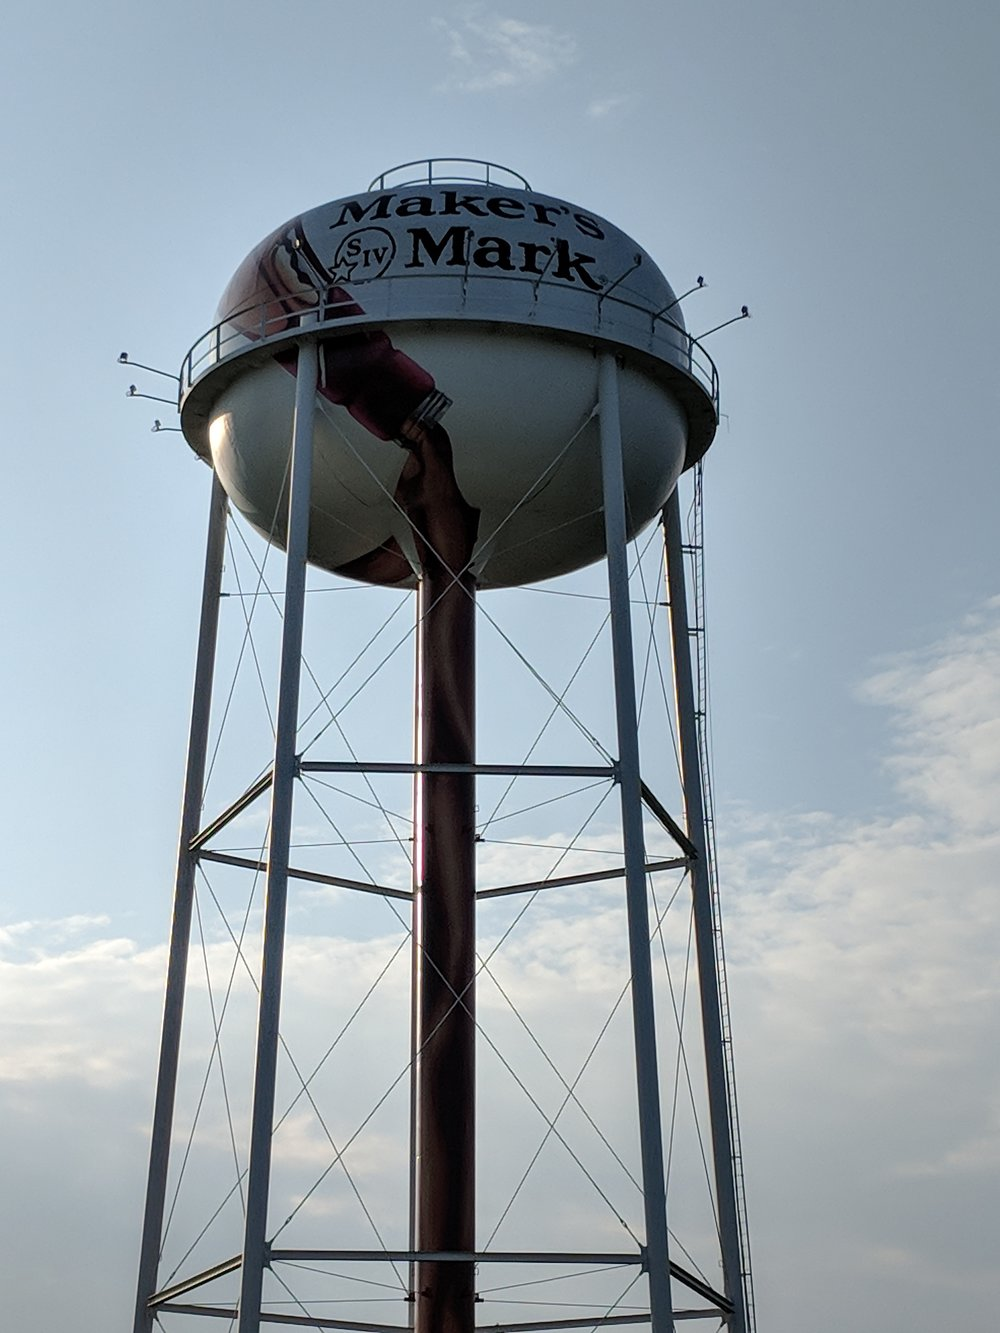 The Maker's Mark/Lebanon, KY water tower in the morning